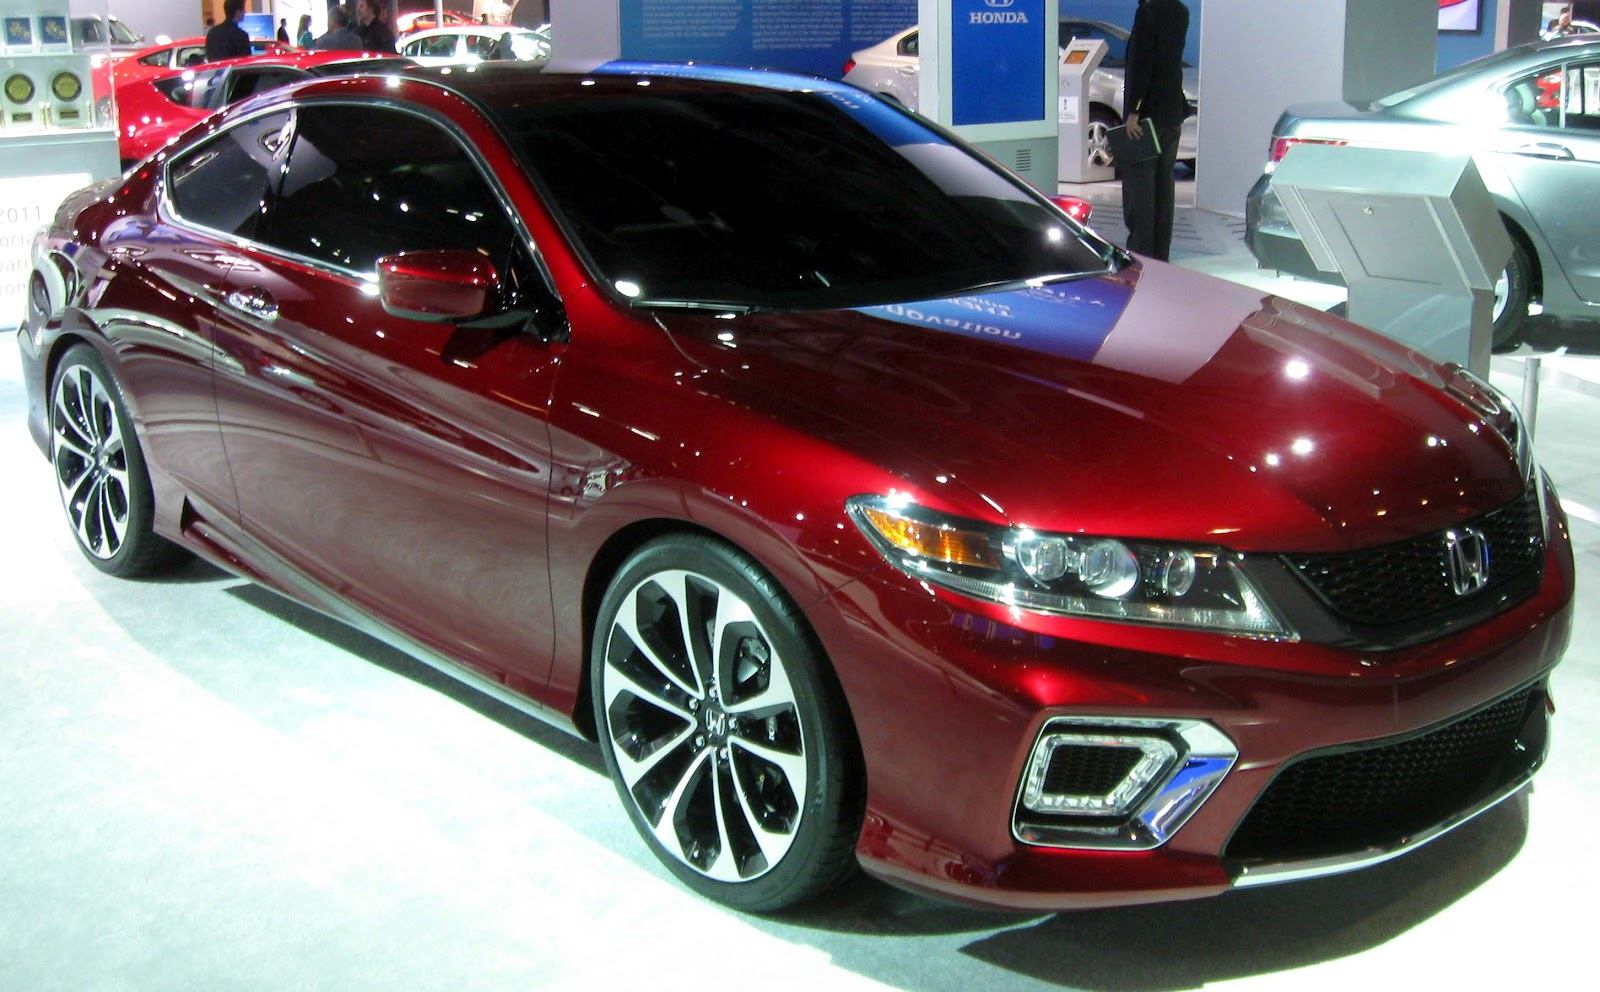 The Honda Accord 2013